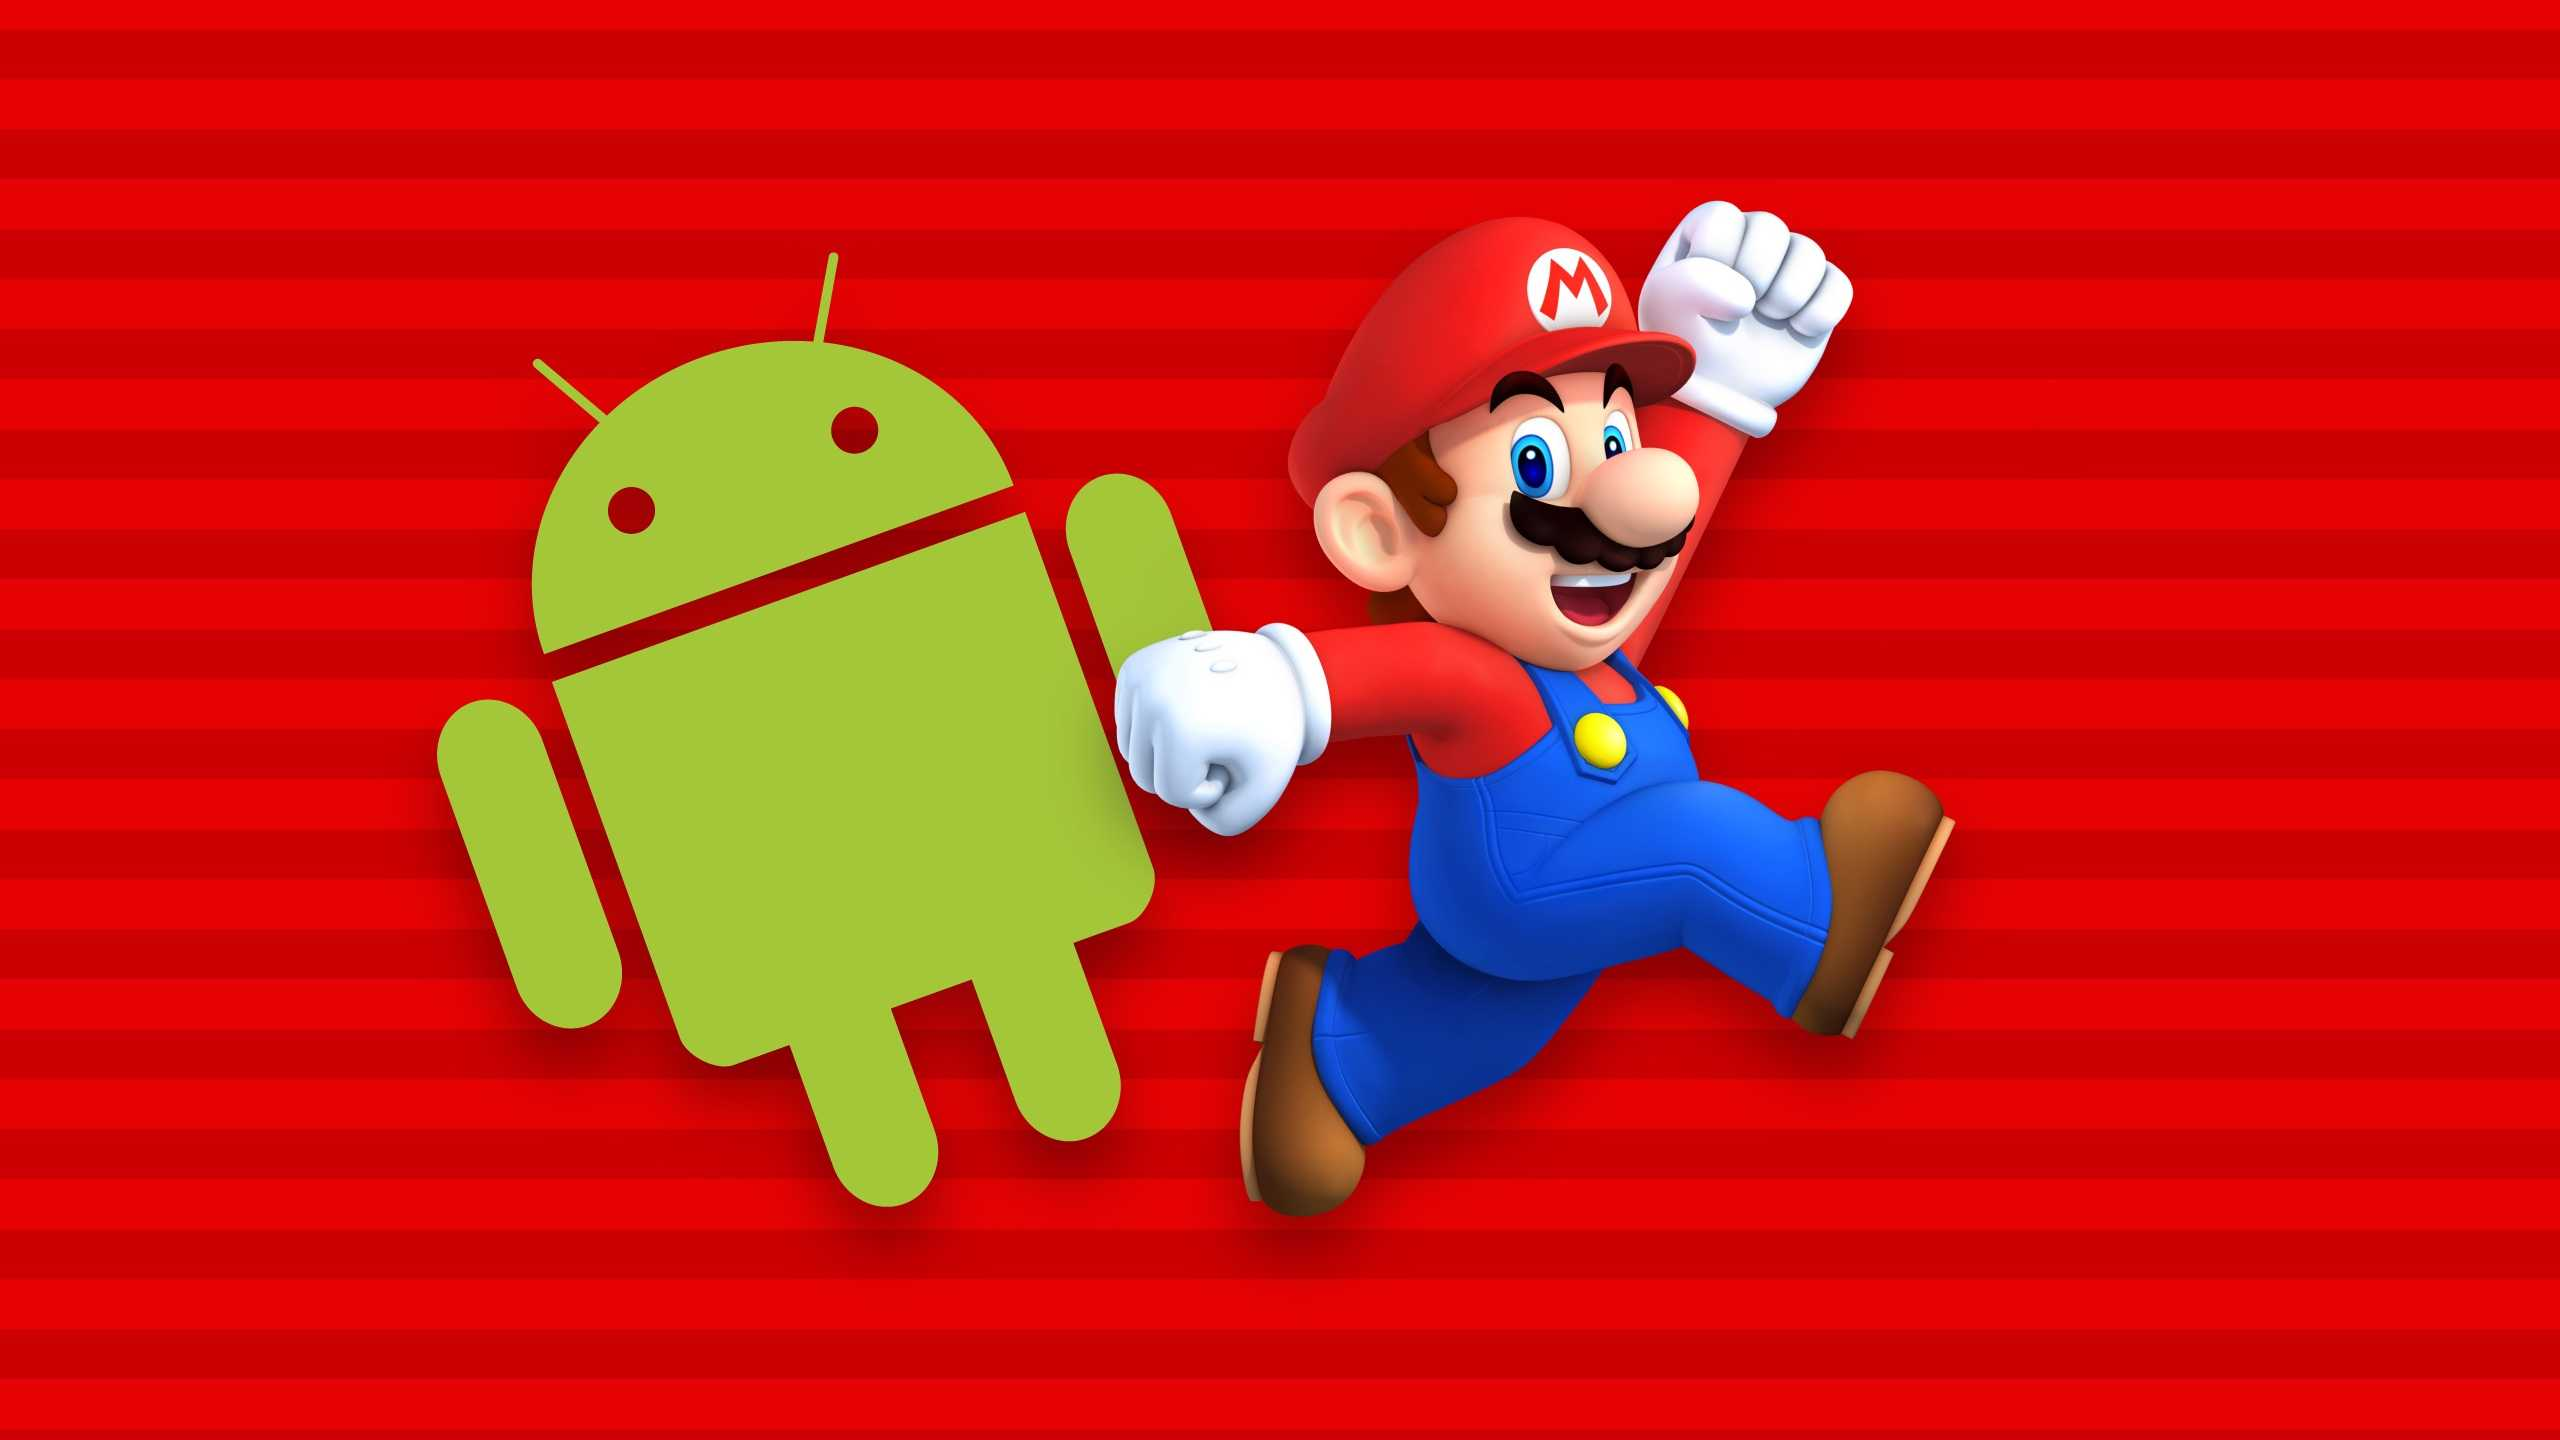 Nintendo Announced Super Mario for Android